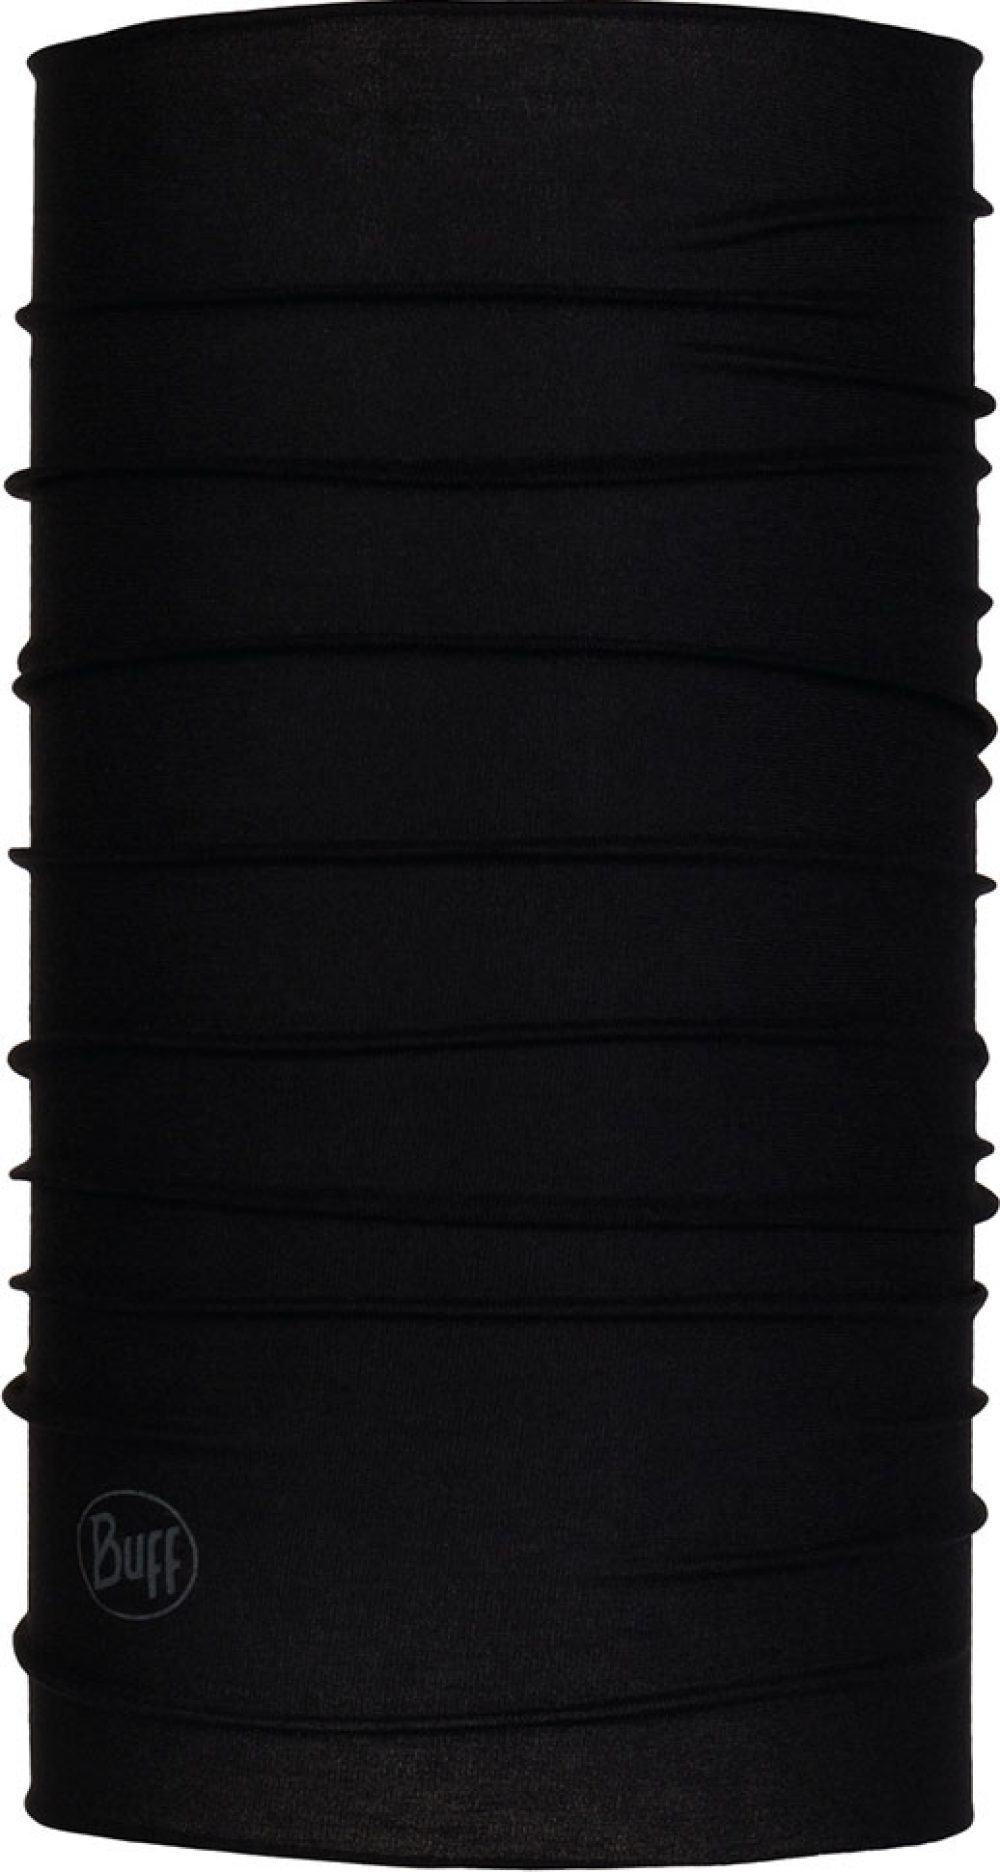 "Studio photo of the XL-Original Buff® Design ""Black"". Source: buff.eu"